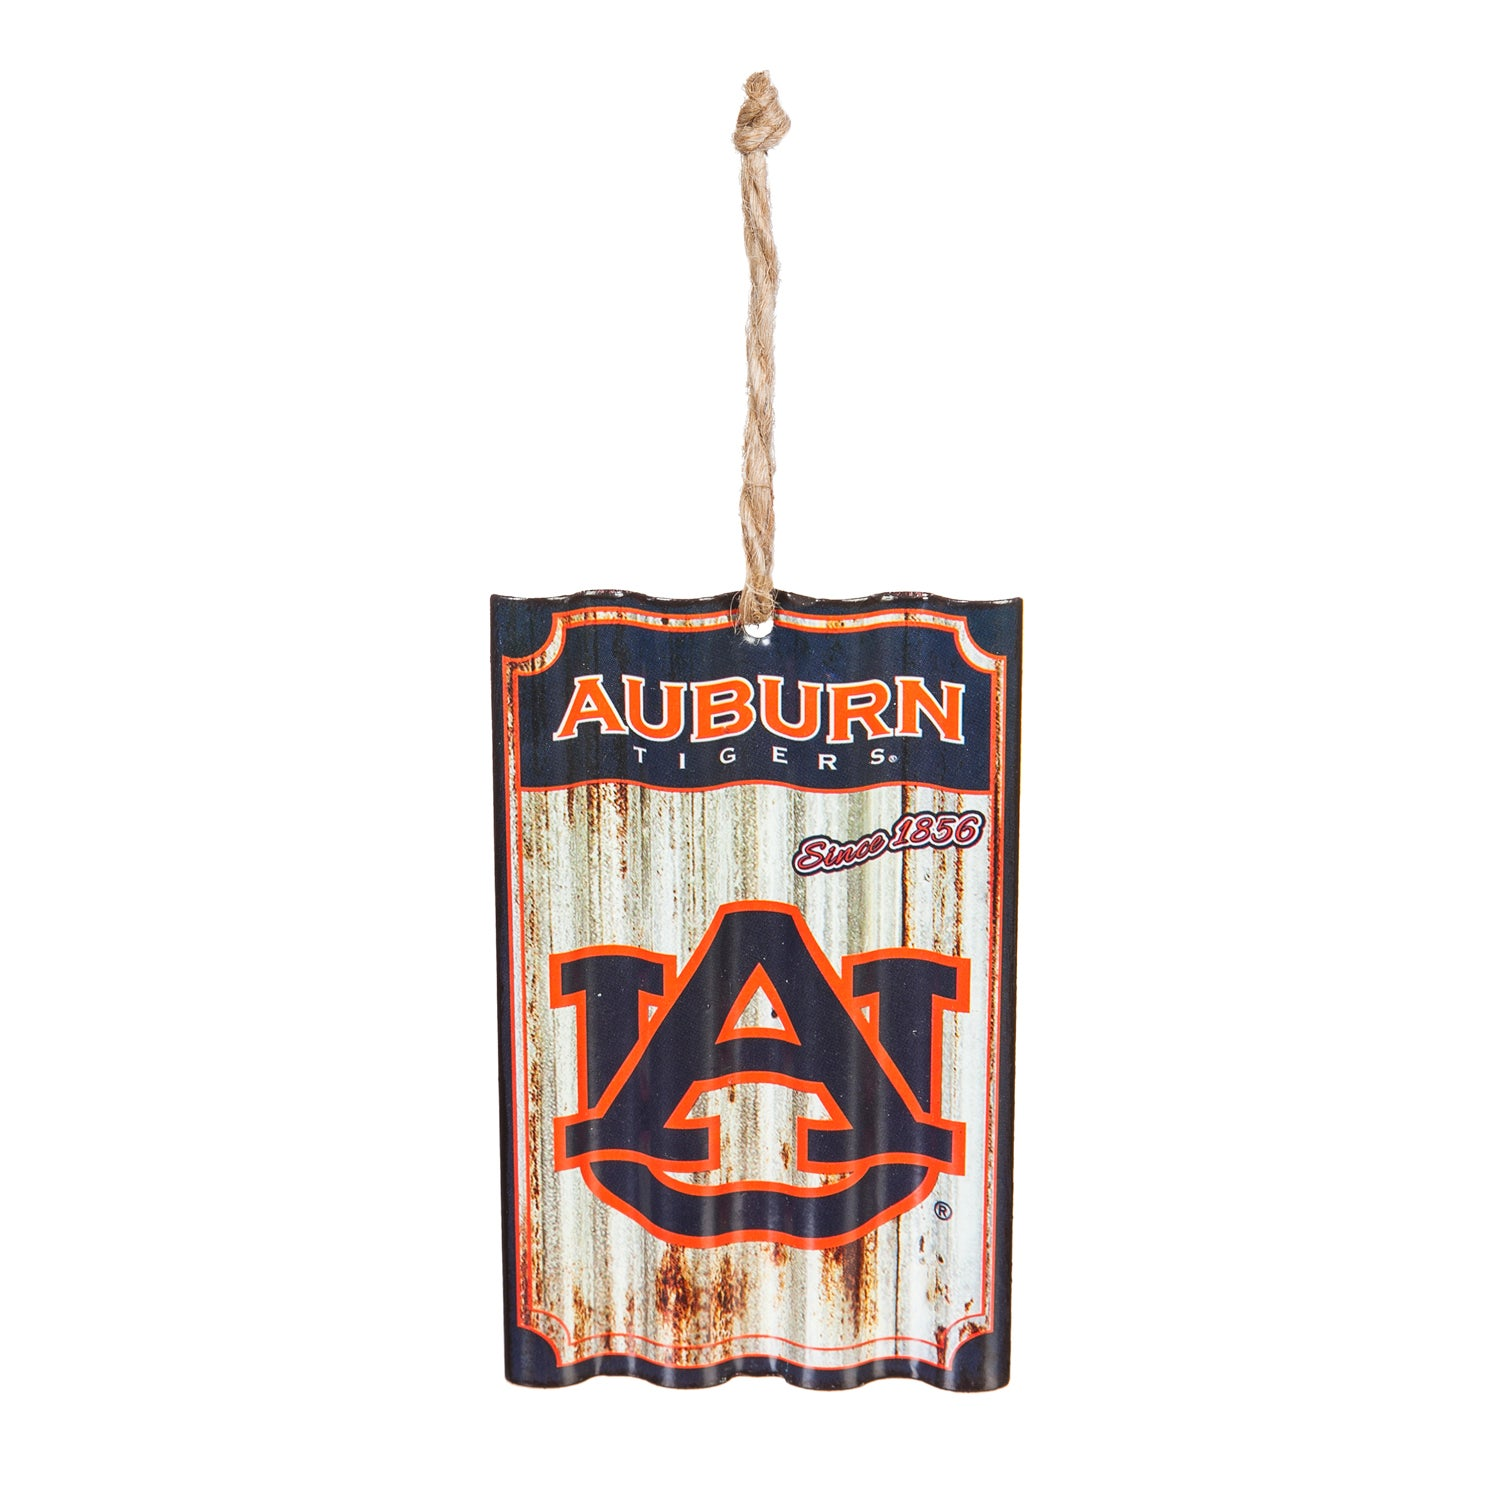 Auburn University Corrugated Metal Ornament